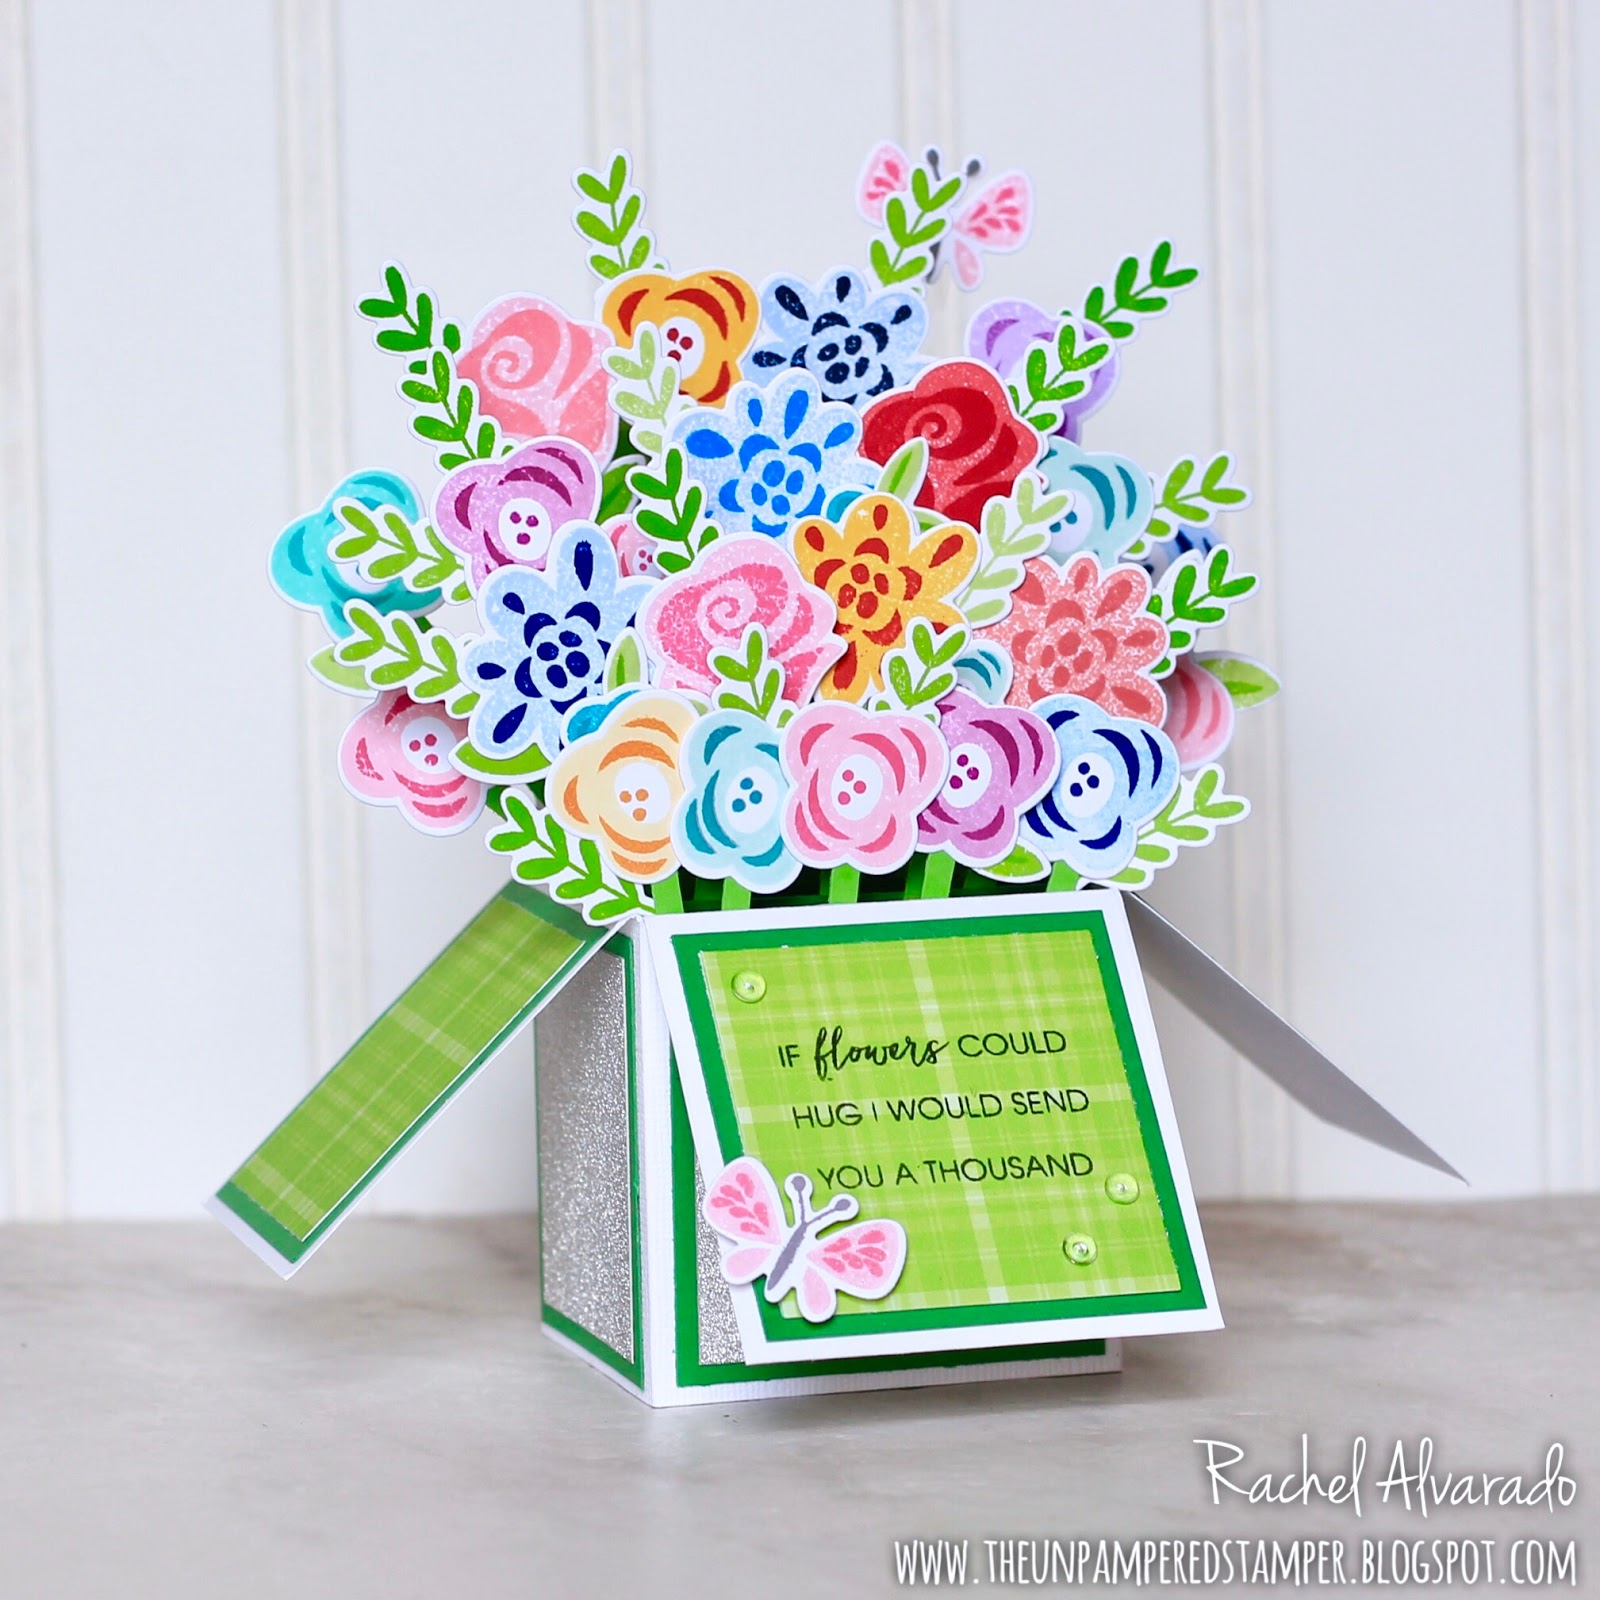 The Unpampered Stamper: Birthday Box Card - Bouquet of Flowers